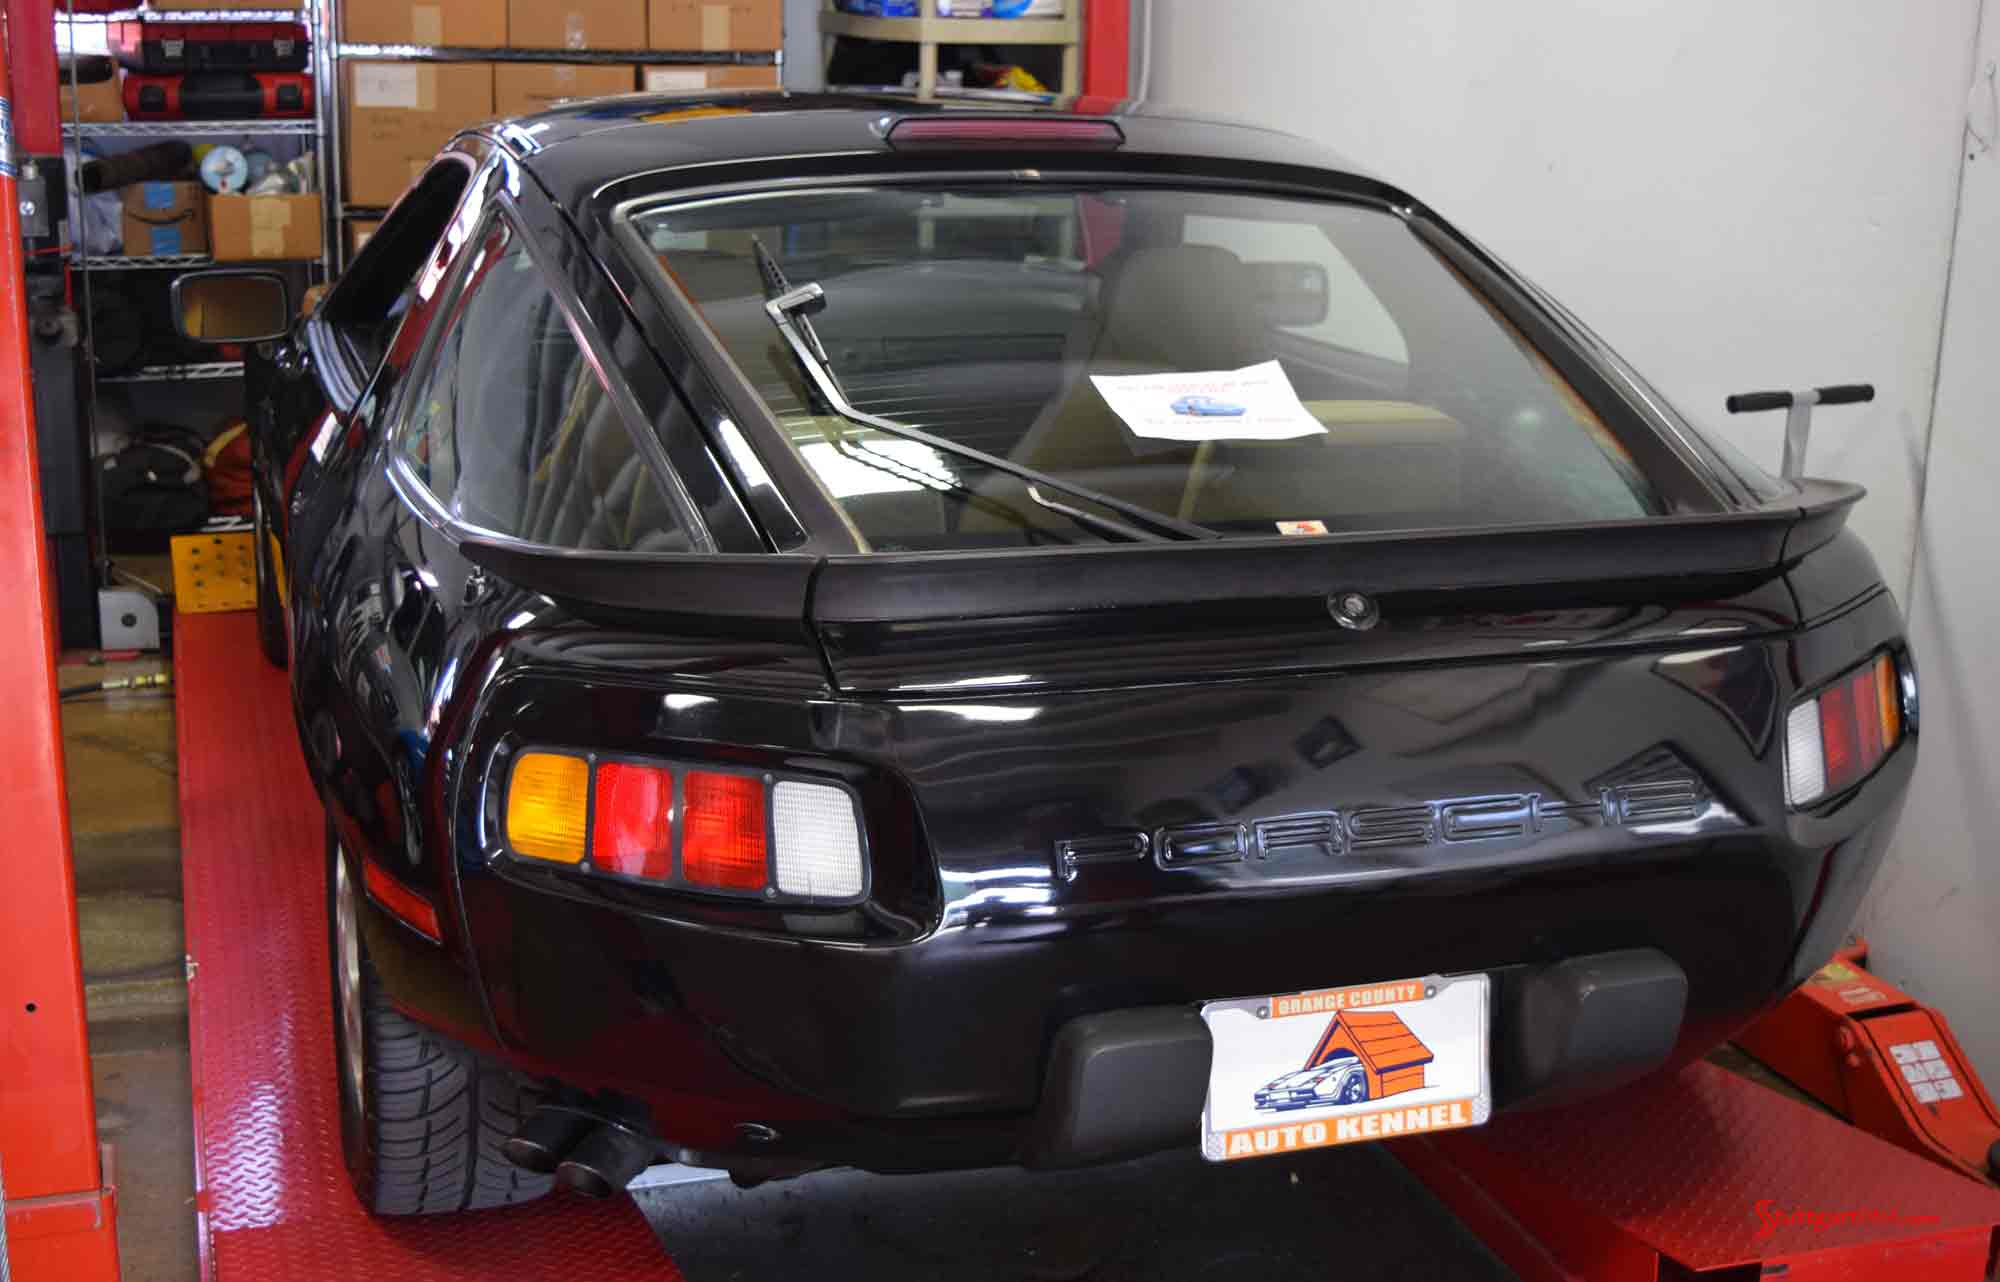 2017 Porsche L.A. Literature, Toy and Memorabilia Meet Weekend: This black-beauty Porsche 928 was on display - but not for sale at the 2017 Auto Kennel Open House. Credit: StuttgartDNA